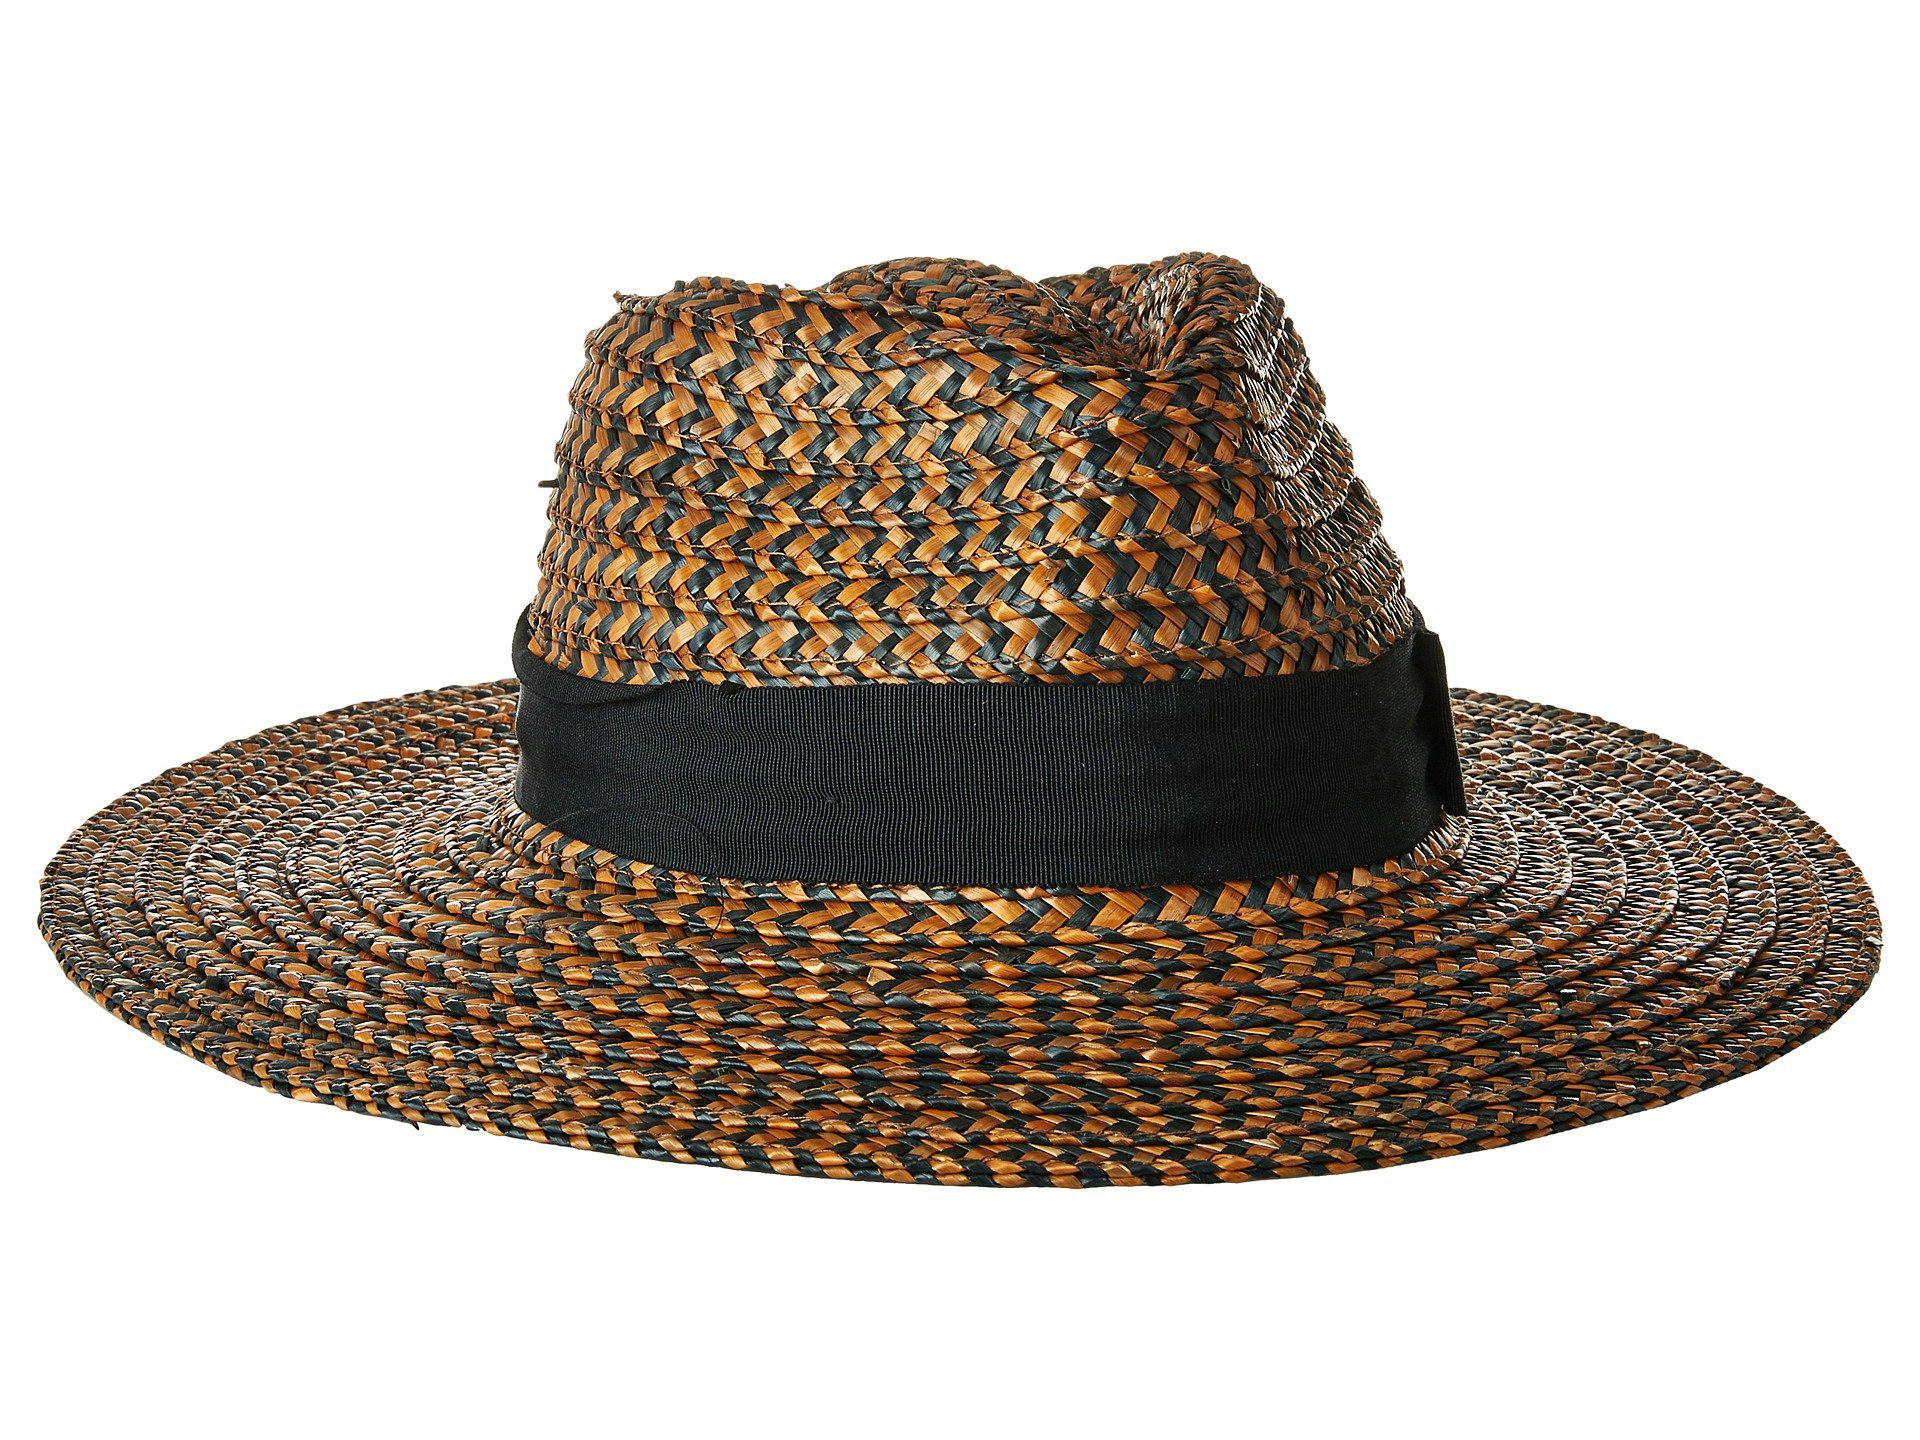 ceb7eae777af7 Lyst - Brixton Joanna Hat (washed Black brown) Caps in Brown